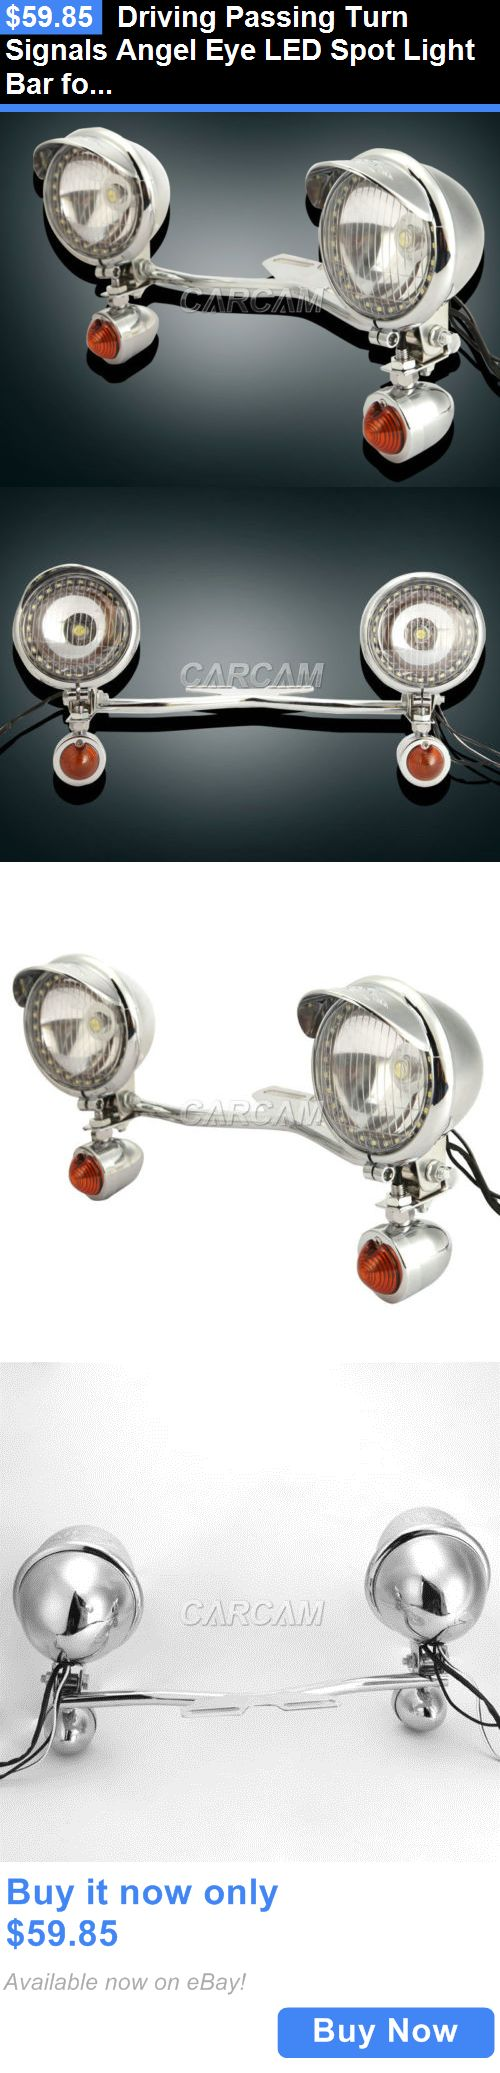 motorcycle parts: Driving Passing Turn Signals Angel Eye Led Spot Light Bar For Honda Cruisers BUY IT NOW ONLY: $59.85